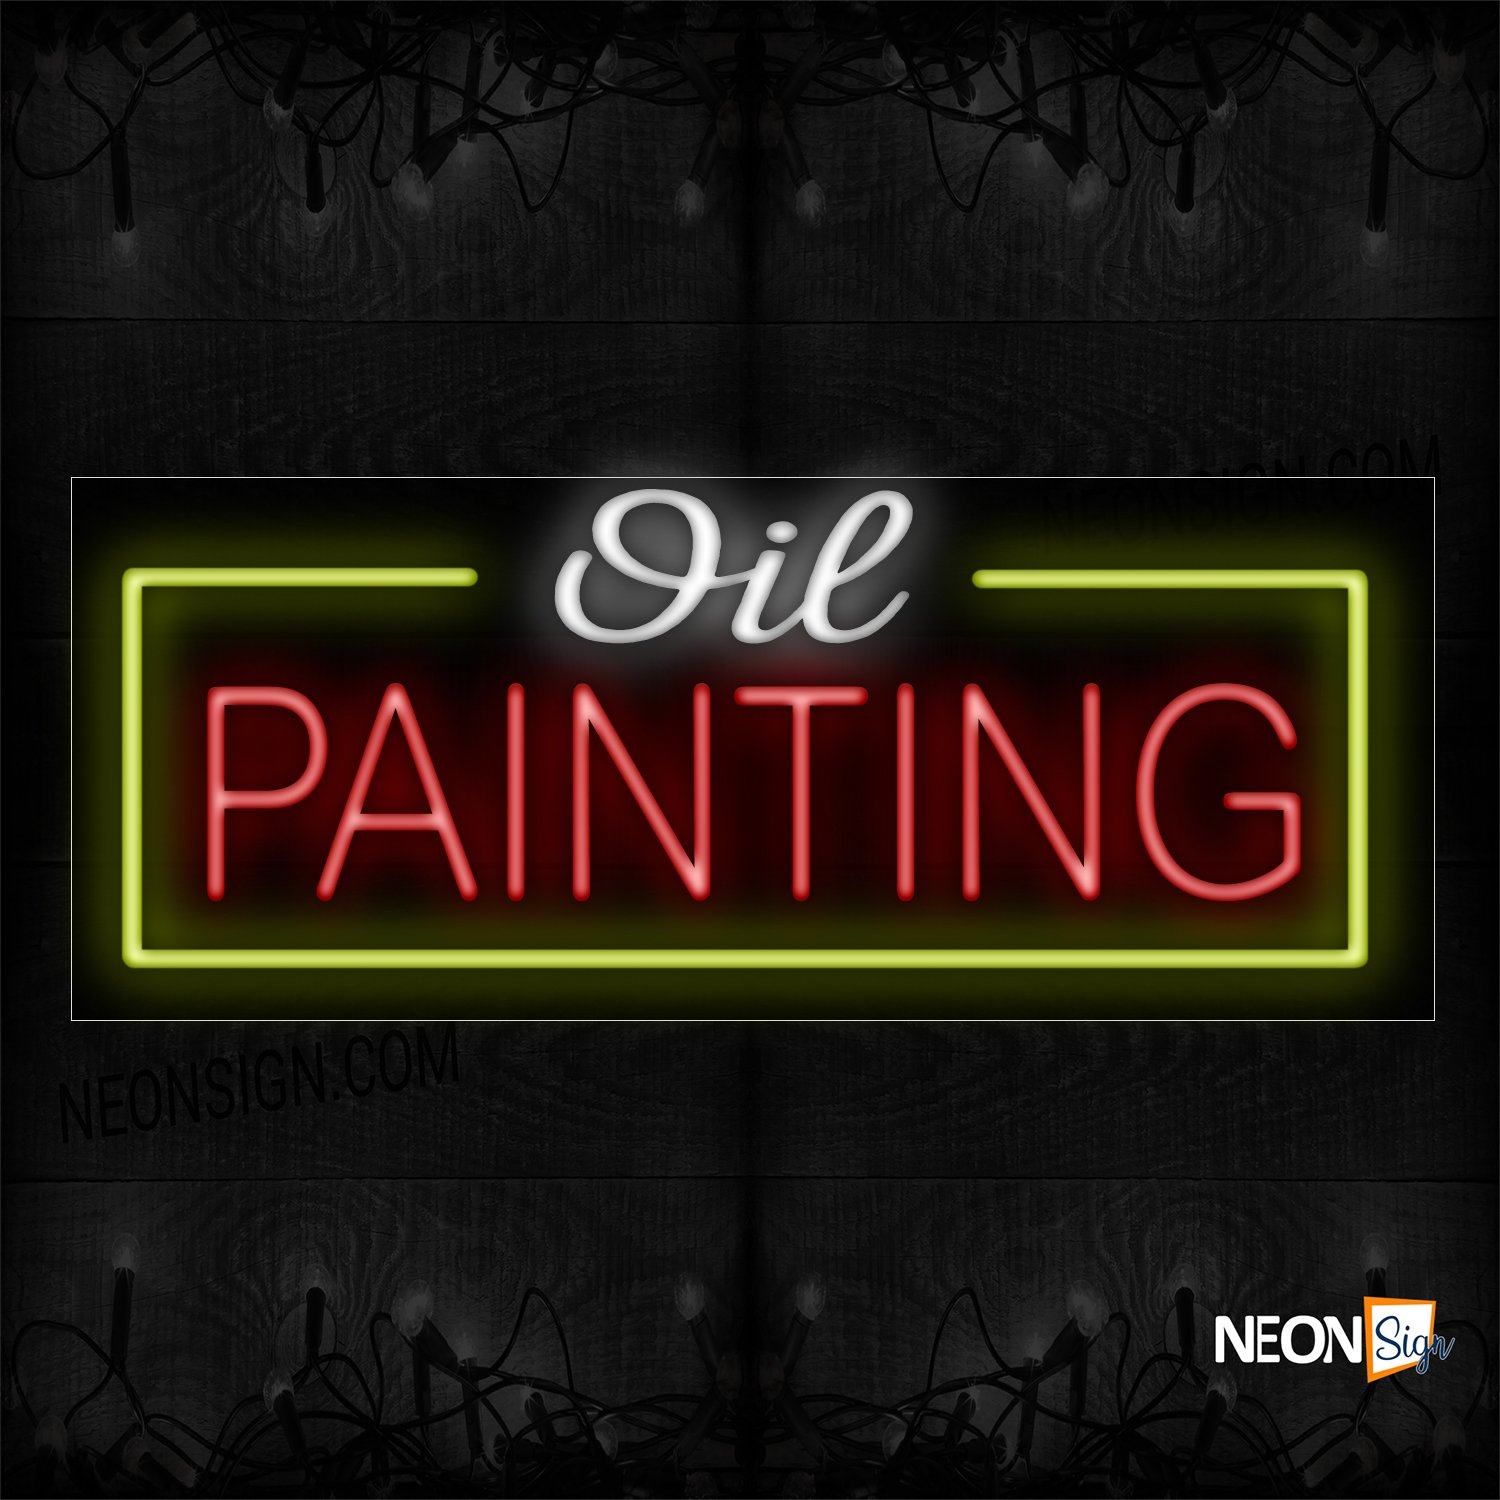 Image of 10592 Oil Printing With Yellow Border Neon Sign_13x32 Black Backing